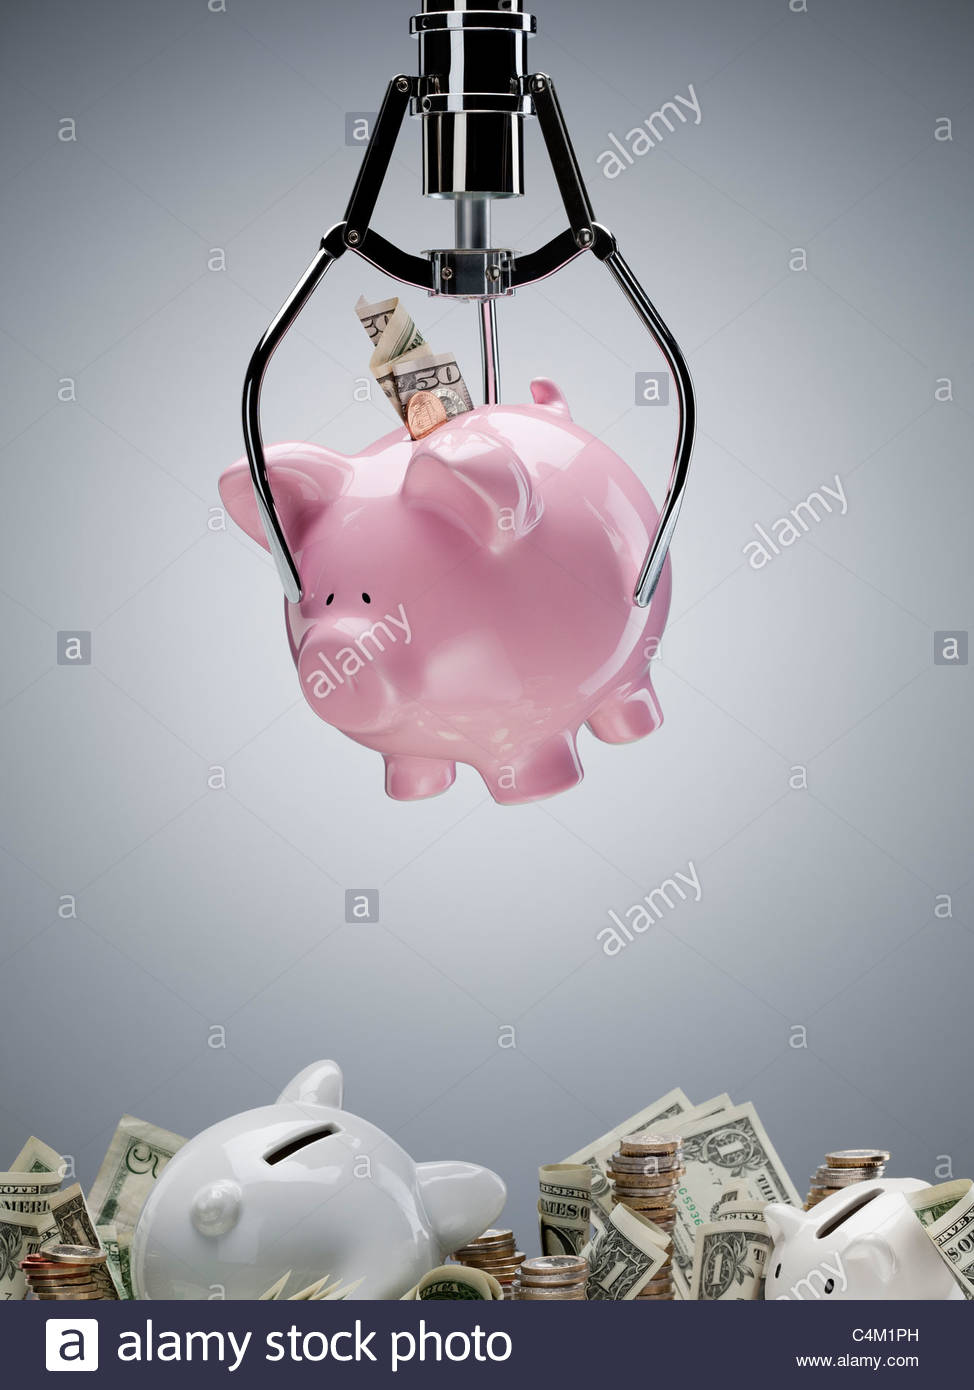 Mechanical claw lifting piggy bank - Stock Image